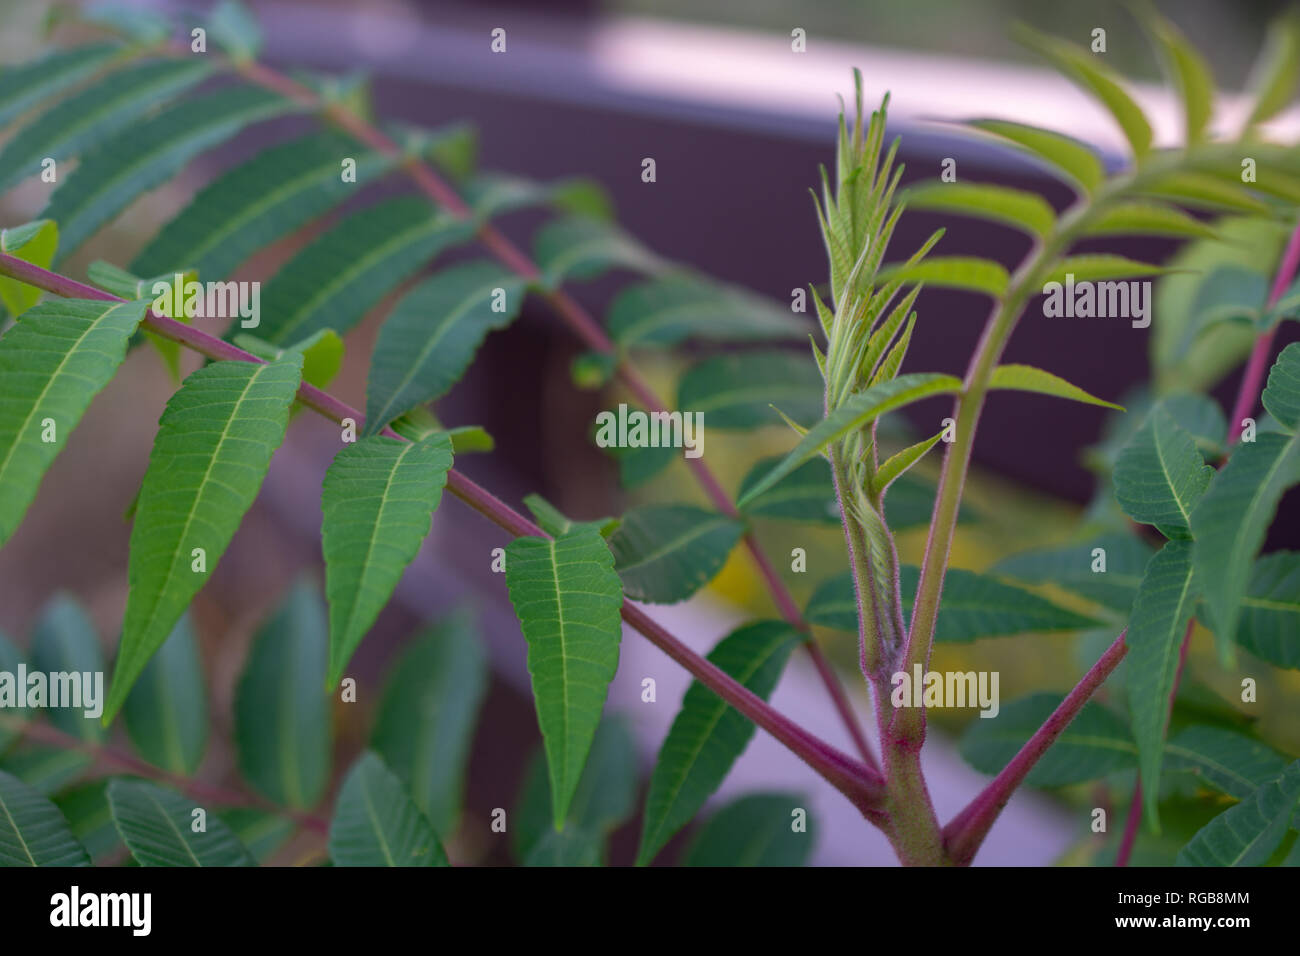 A light green outdoor plant with purple stems growing along